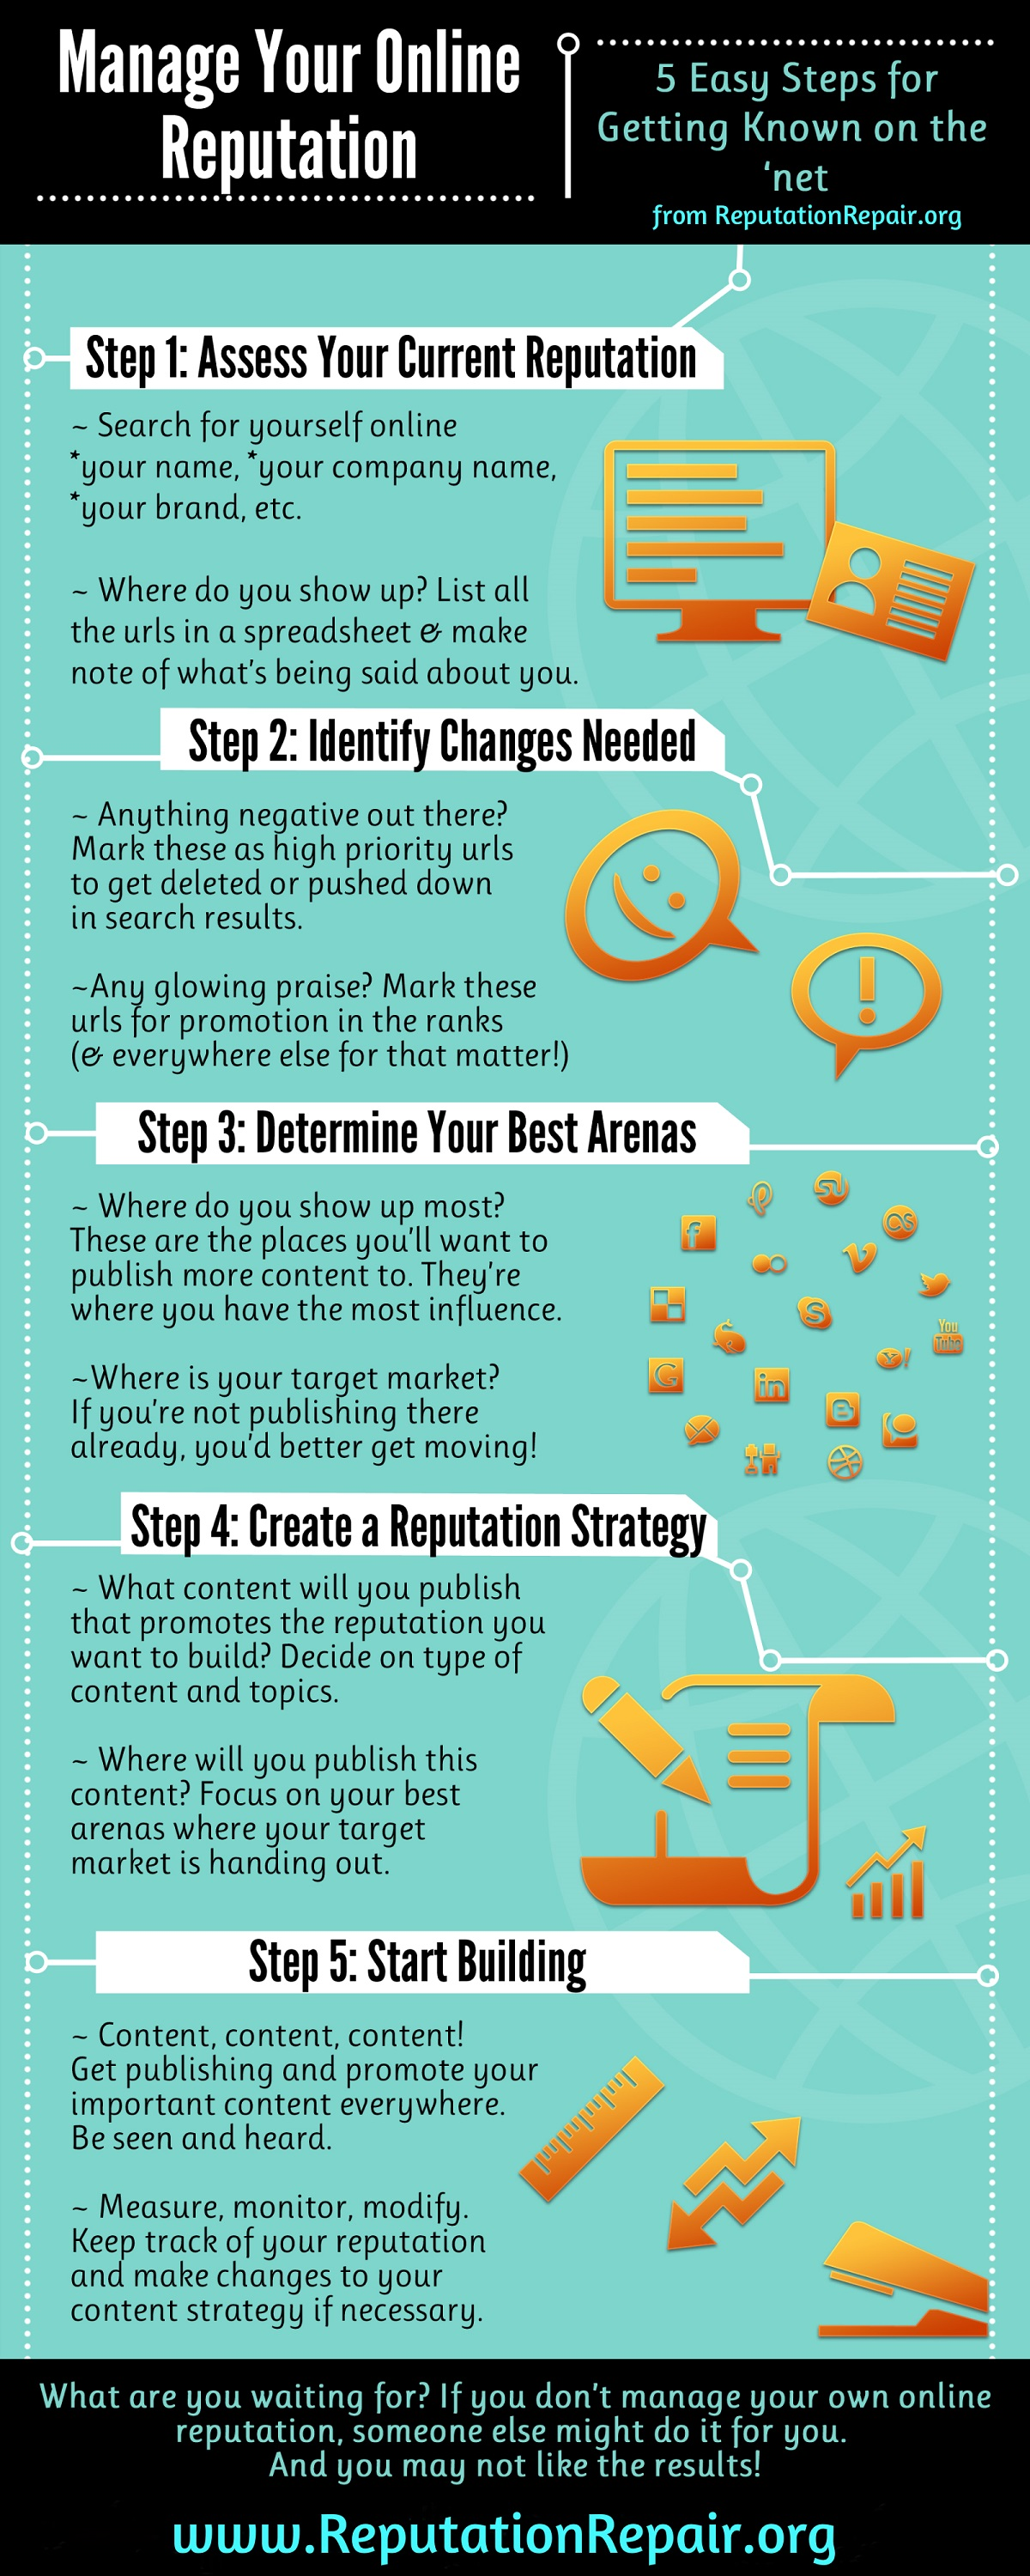 2015-Online-Reputation-Management-and-Reputation-Repair-Infographic